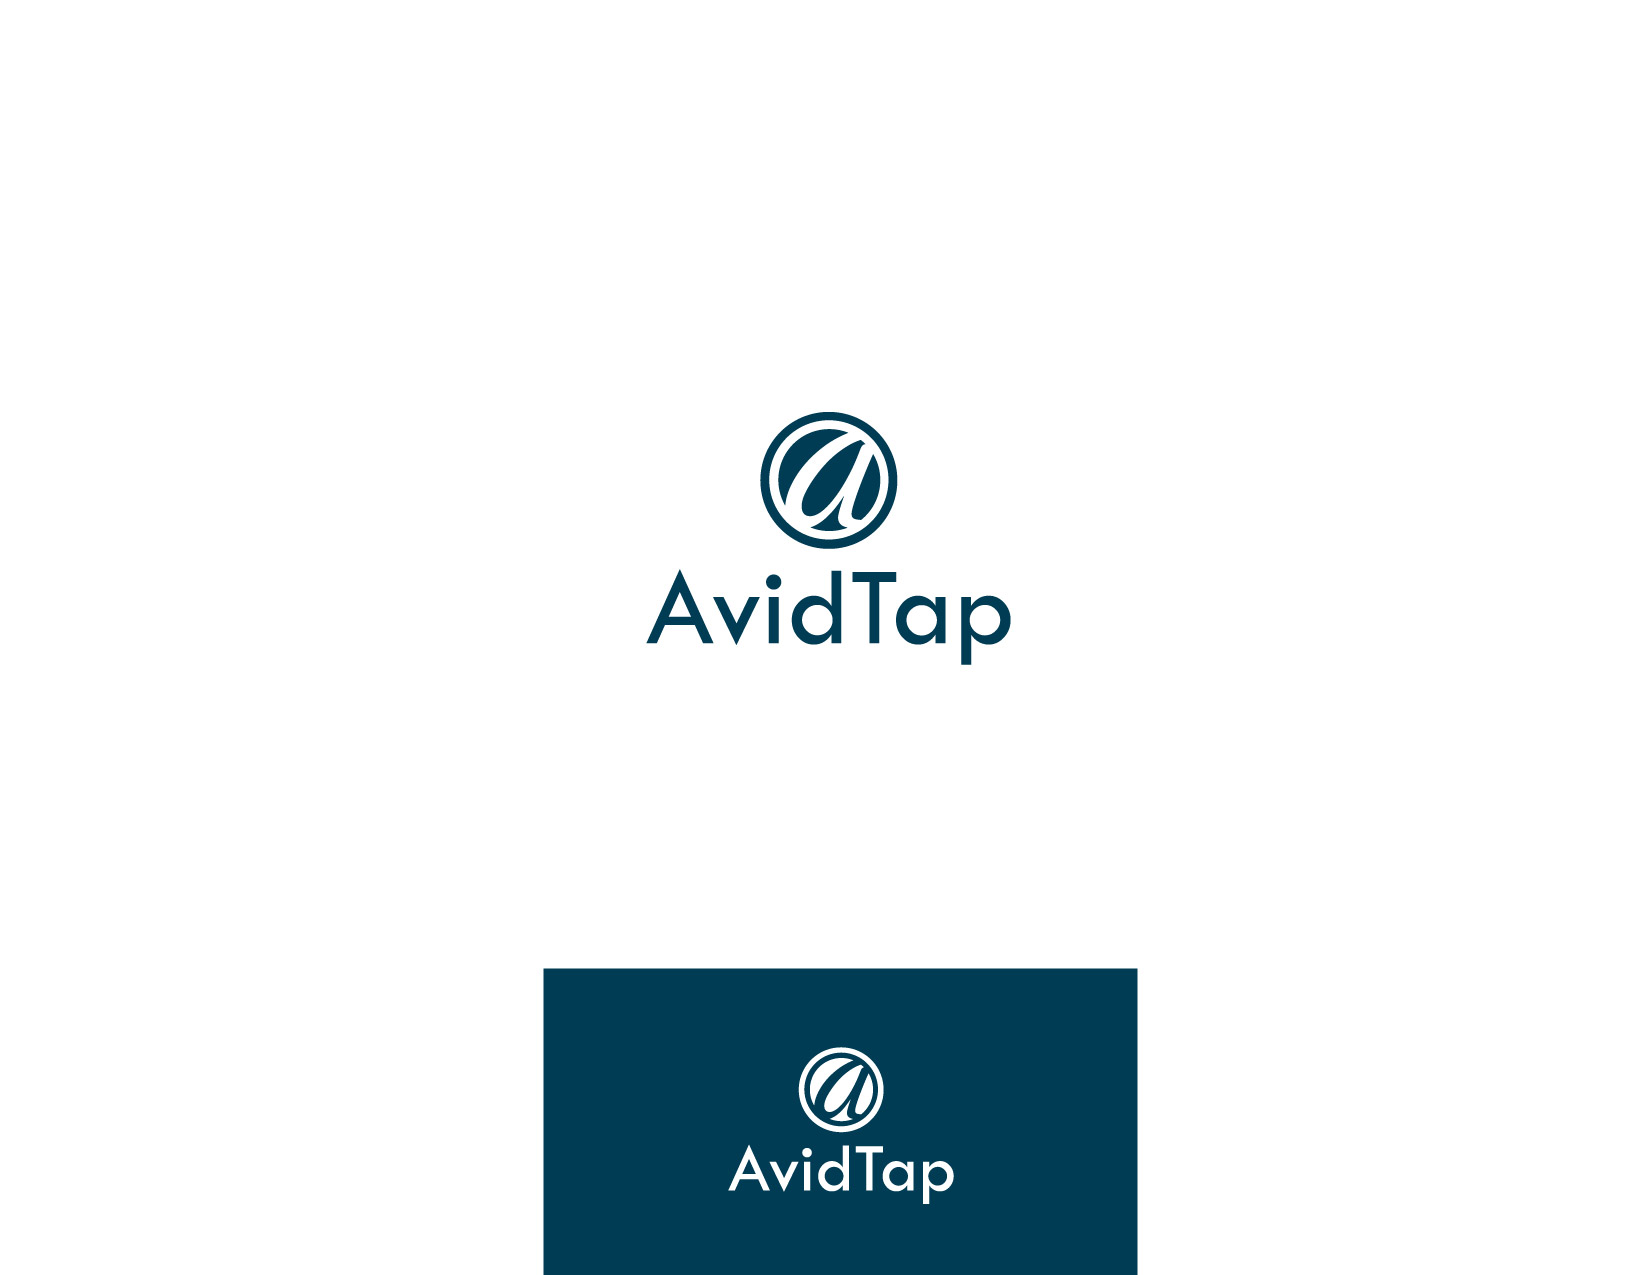 Logo Design by Osi Indra - Entry No. 86 in the Logo Design Contest Imaginative Logo Design for AvidTap.